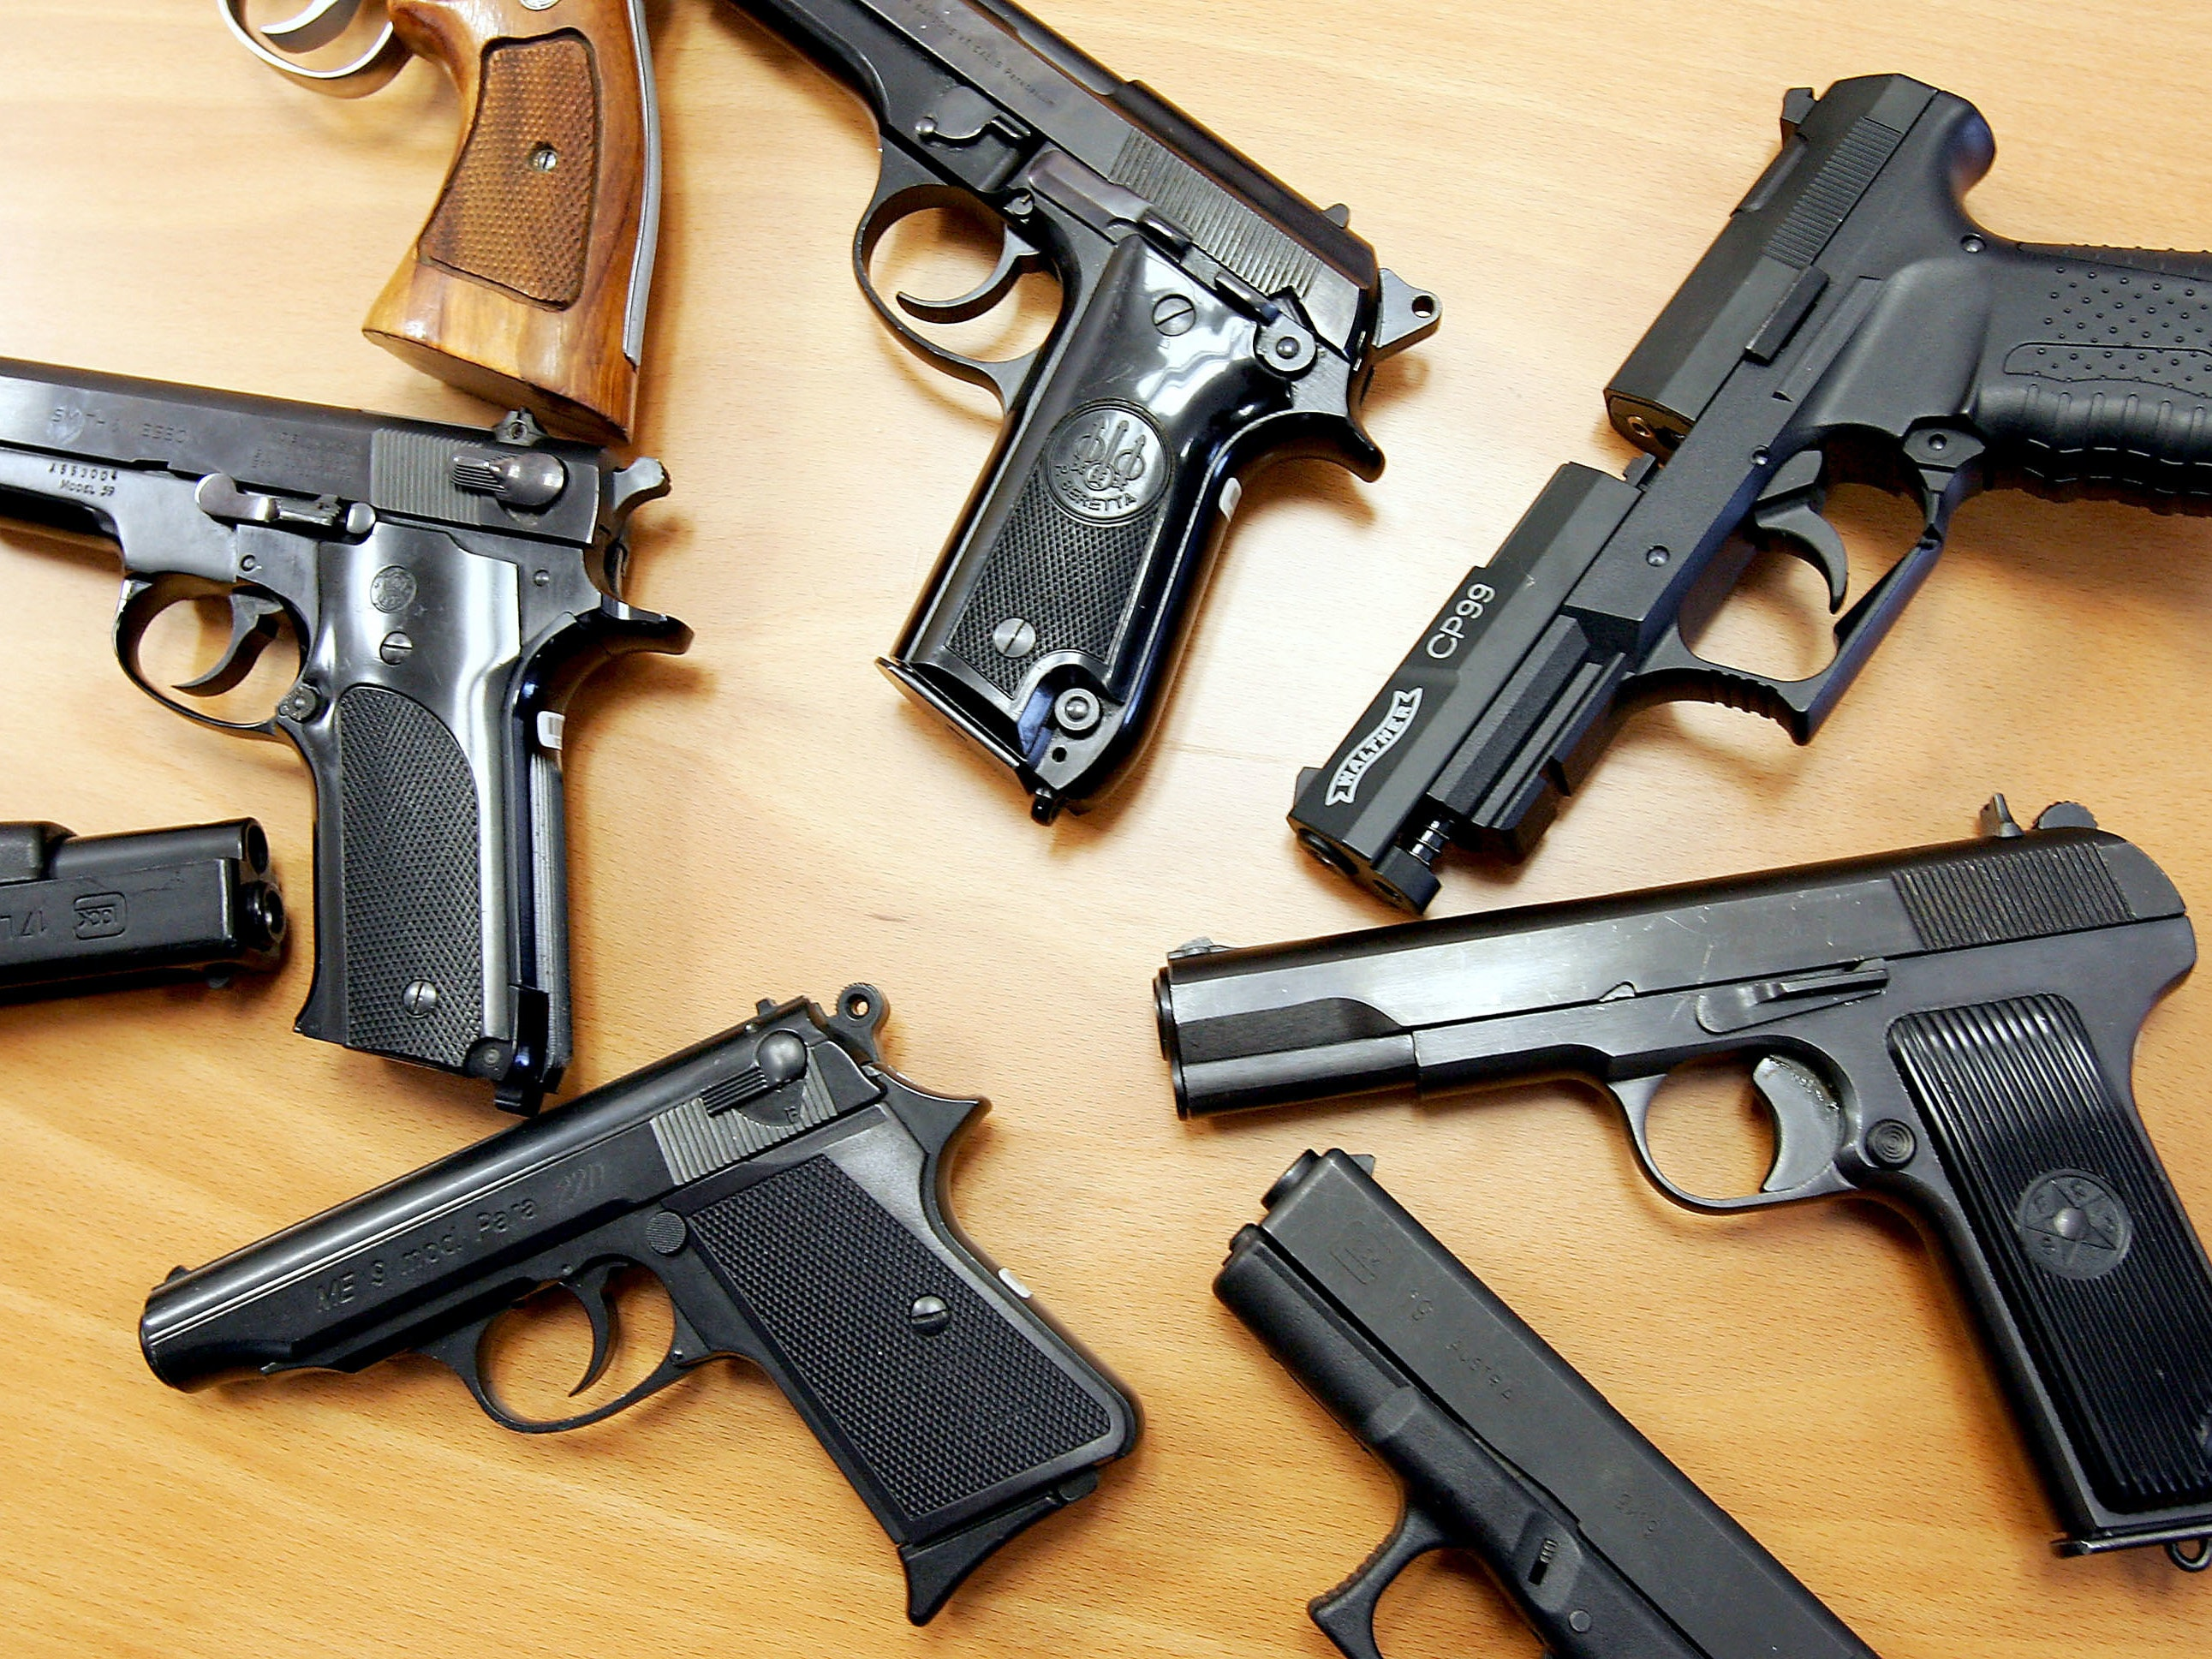 A haul of firearms recovered in recent police operations sits on a table during a press conference on June 22, 2005 in London, England. Urban Concepts along with the British police force announced their 'Don't Trigger Campaign' which aims to unite the nation against gun crime.